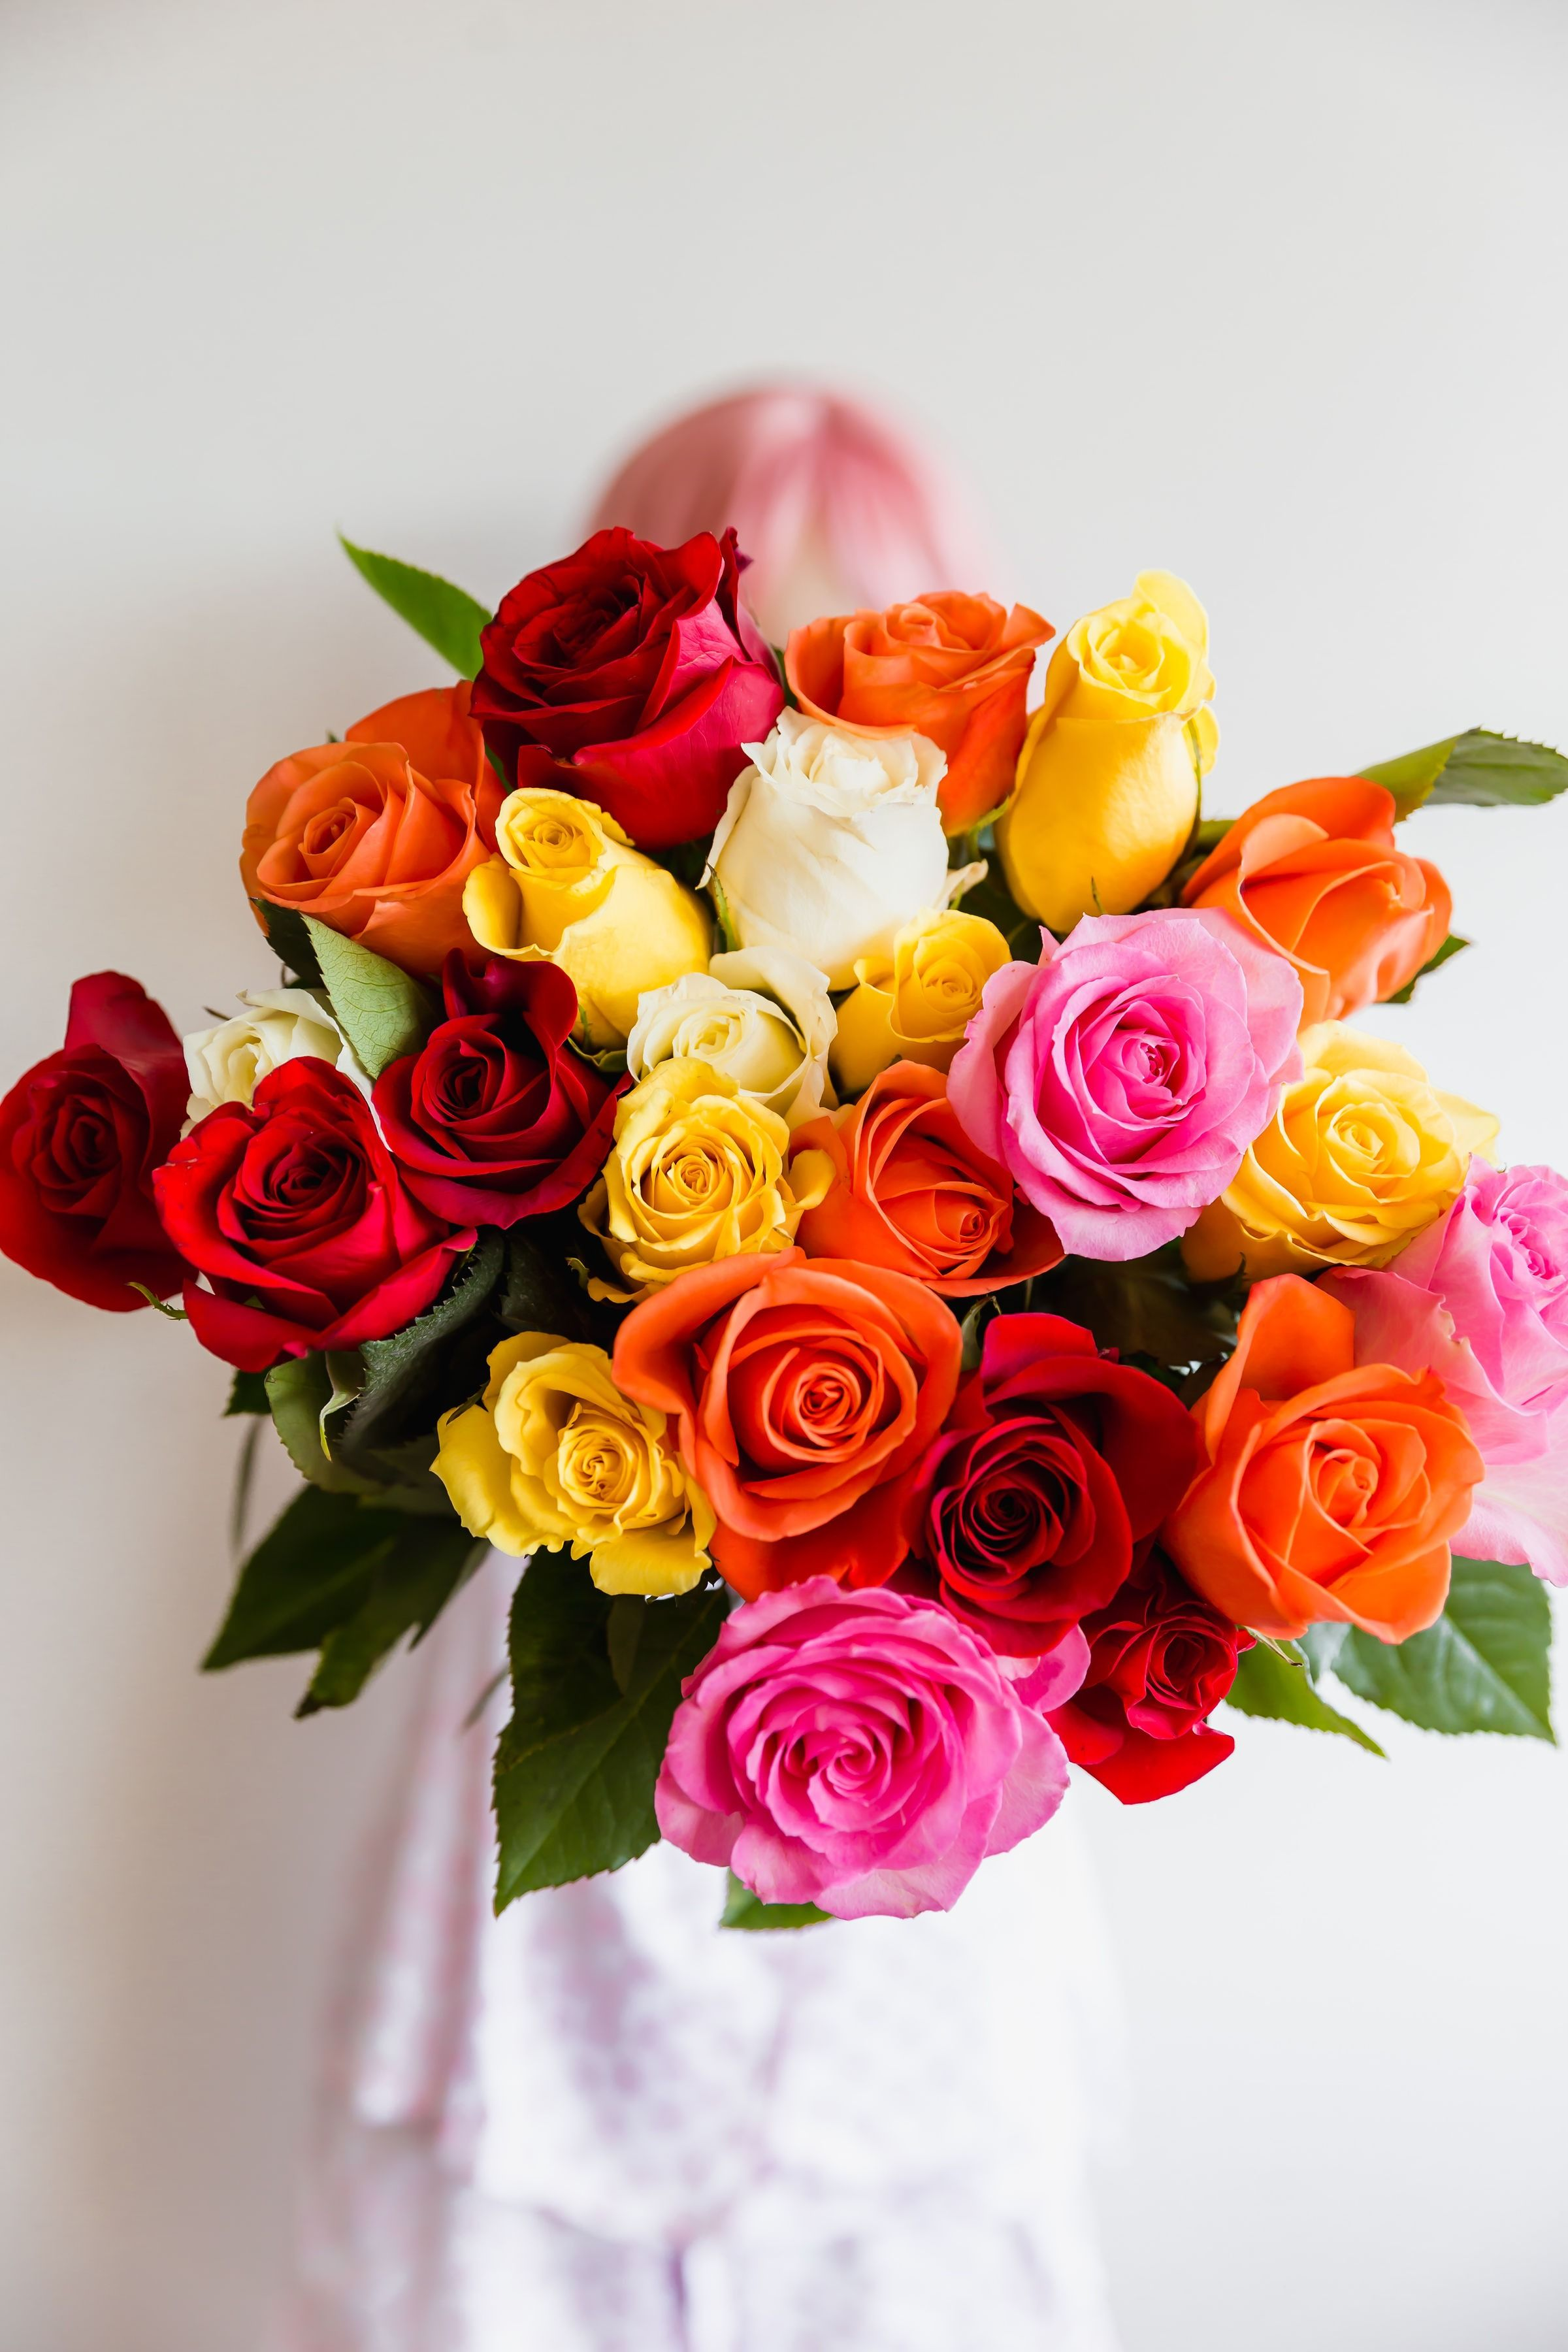 This Assorted Multi Colored Rose Bouquet Has An Assortment Of